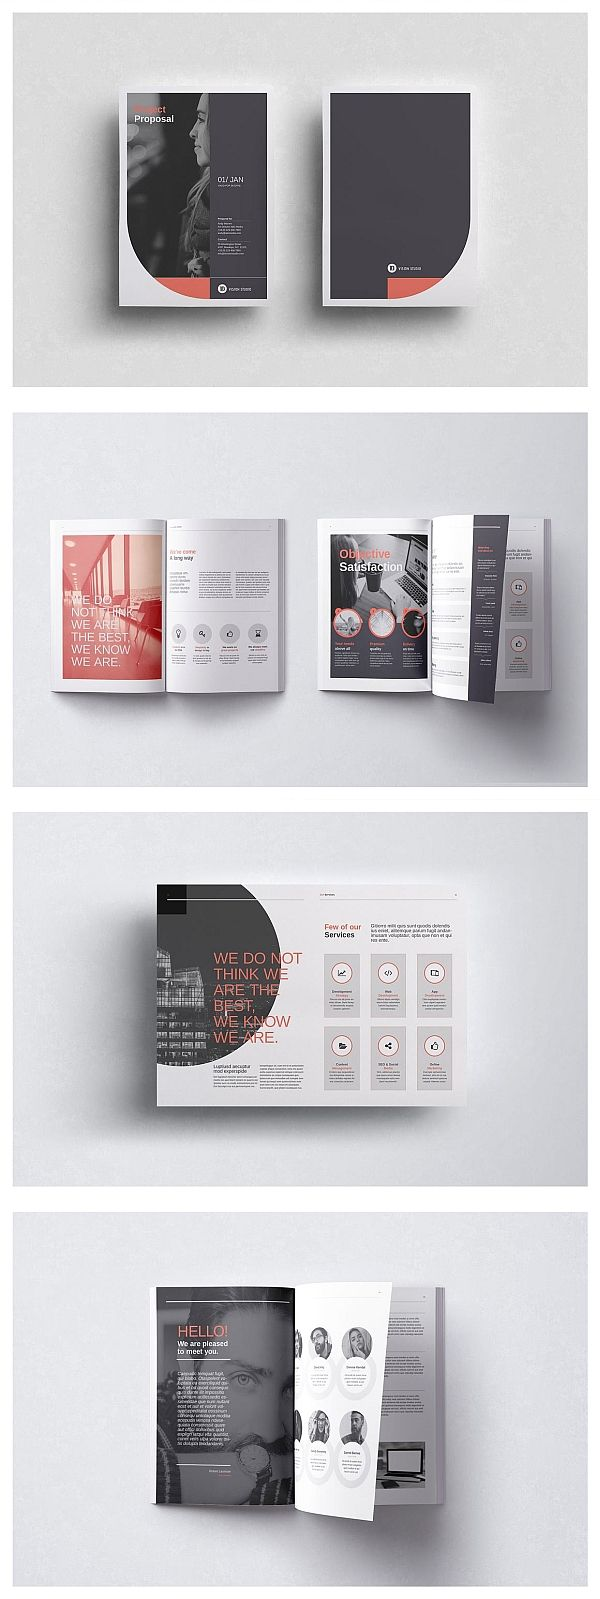 Project Proposal Template 006 #editoriallayout